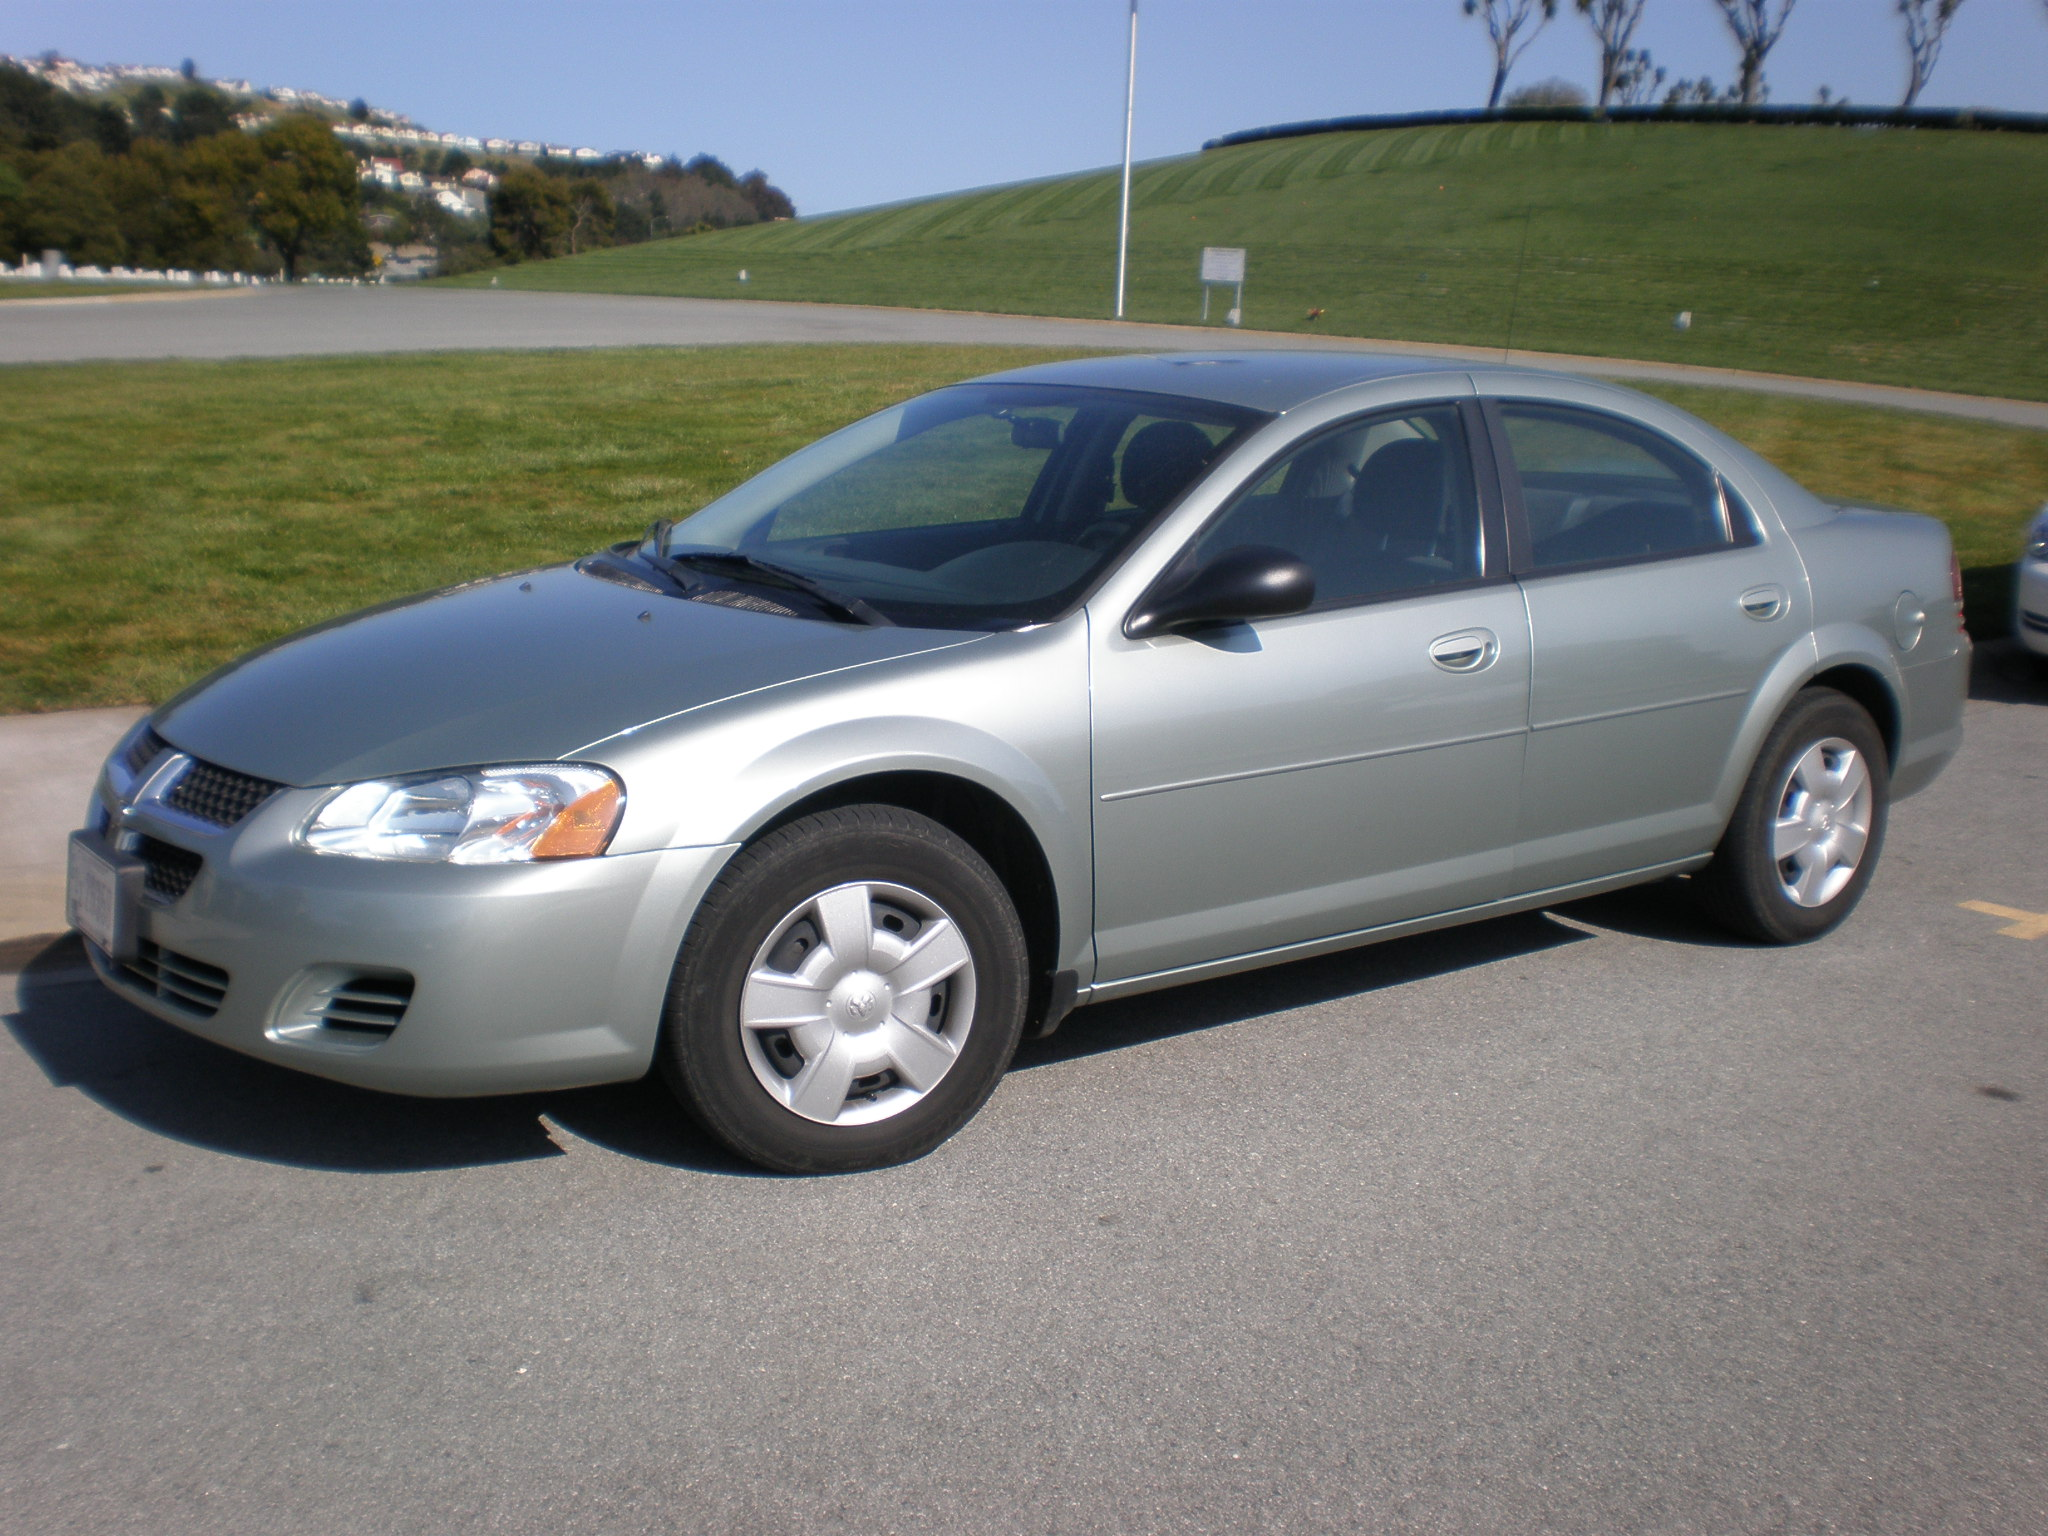 Silver_Dodge_Stratus_SXT_side Great Description About 2001 Dodge Stratus with Captivating Pictures Cars Review